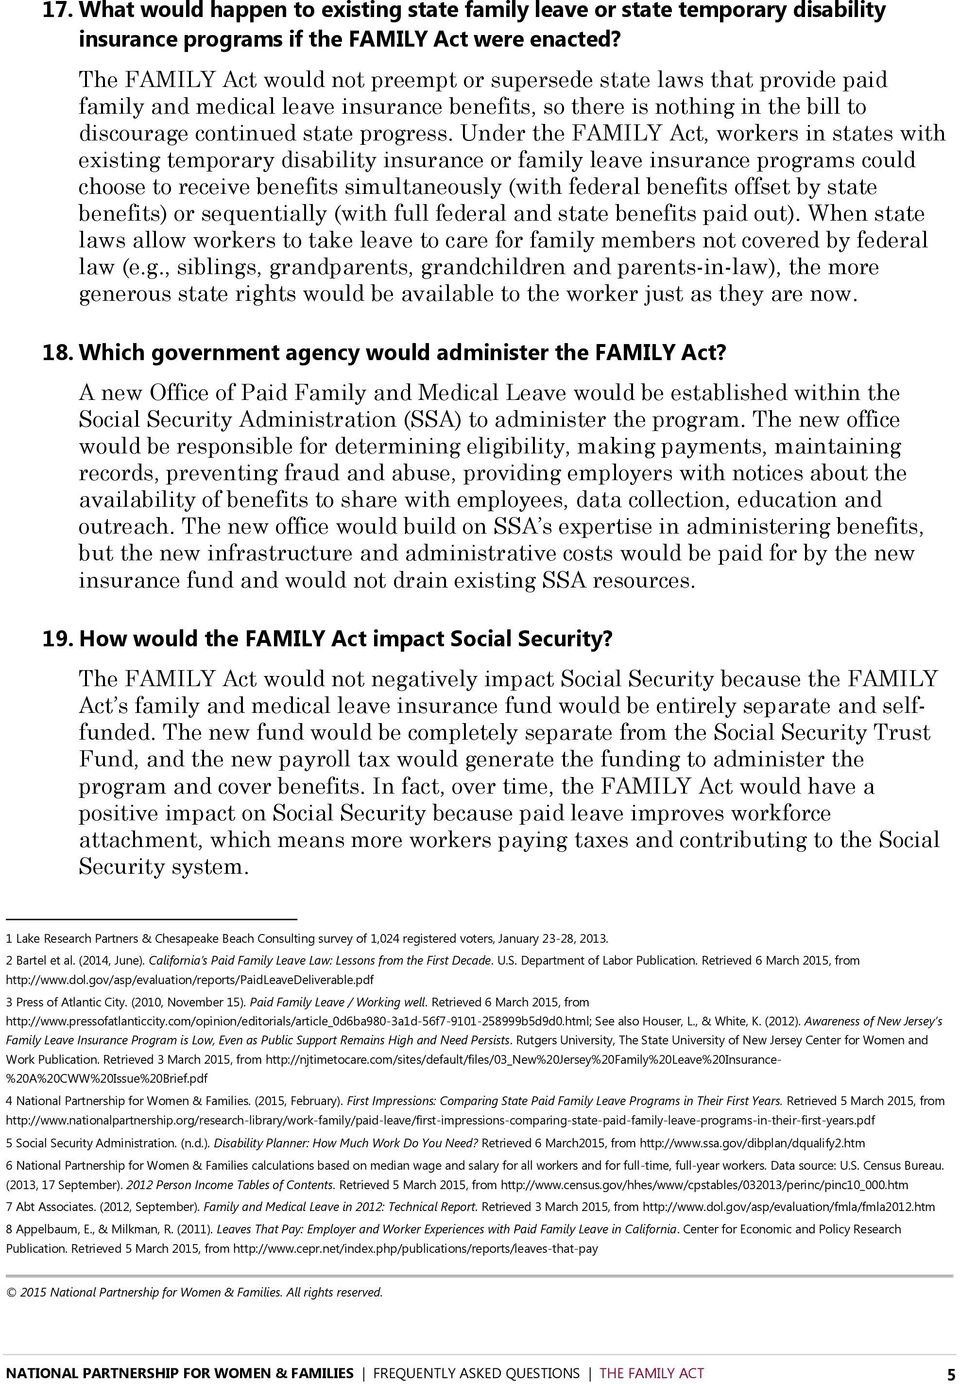 Under the FAMILY Act, workers in states with existing temporary disability insurance or family leave insurance programs could choose to receive benefits simultaneously (with federal benefits offset